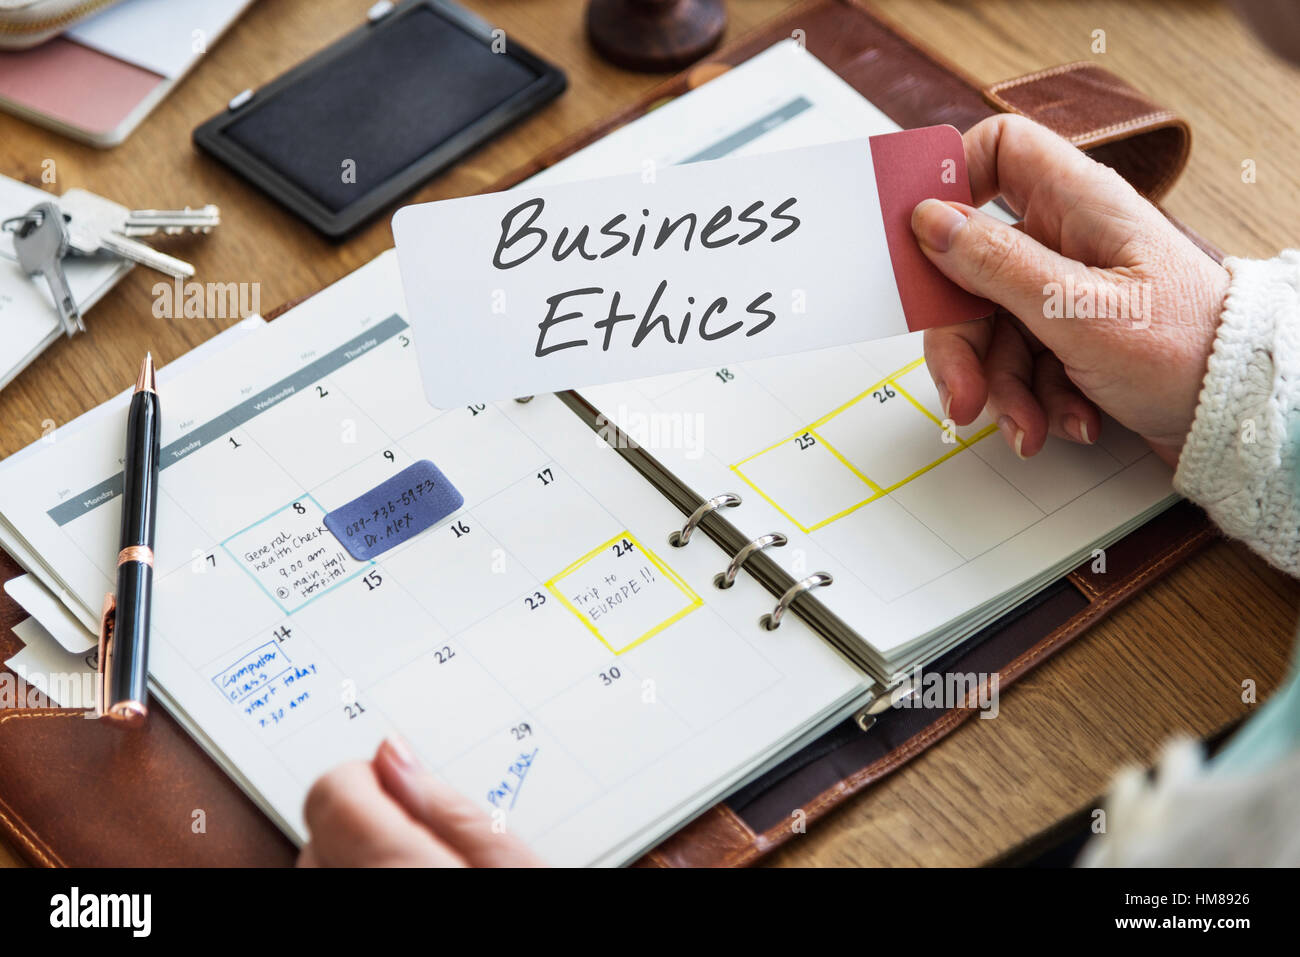 Business Insider Stock Photos Images Alamy Elex Idea Blog Electronic Watchdog Ethics Integrity Moral Trustworthy Fair Trade Concept Image